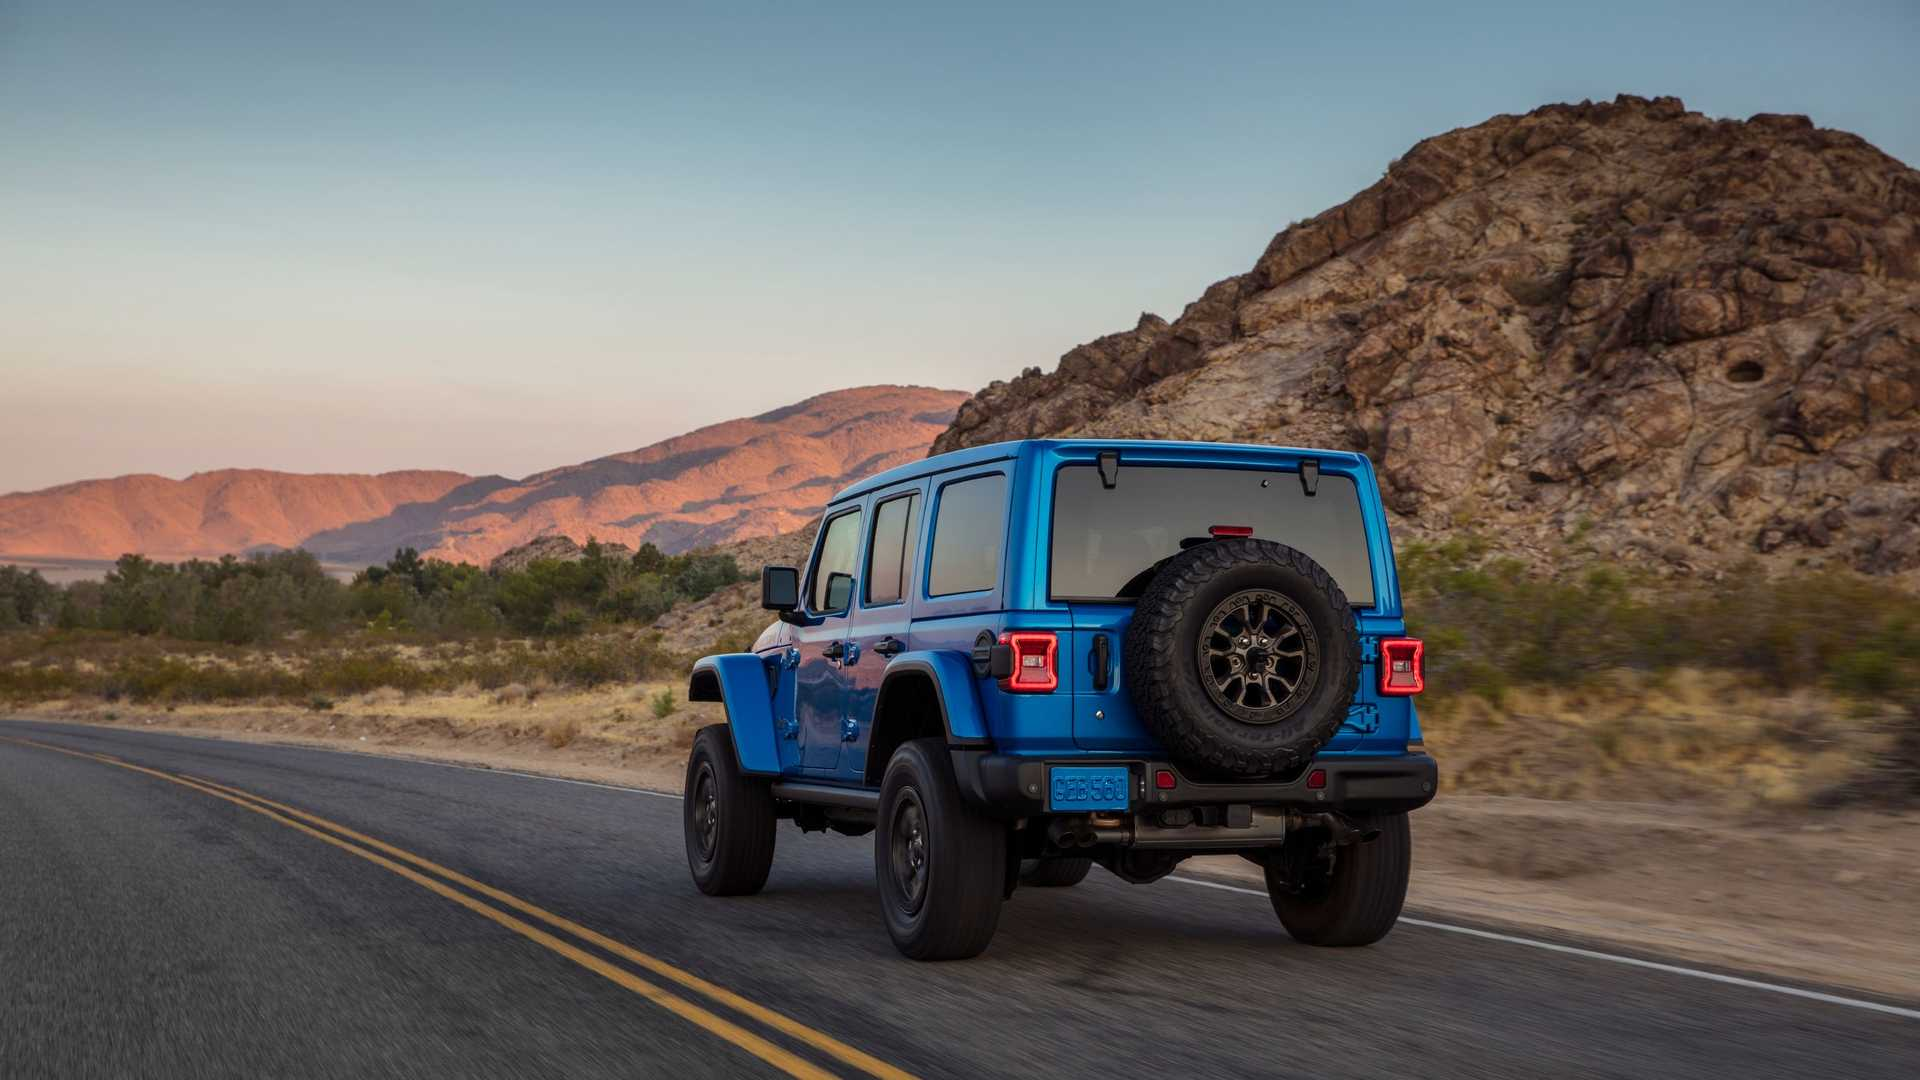 2021-jeep-wrangler-rubicon-392-back-view